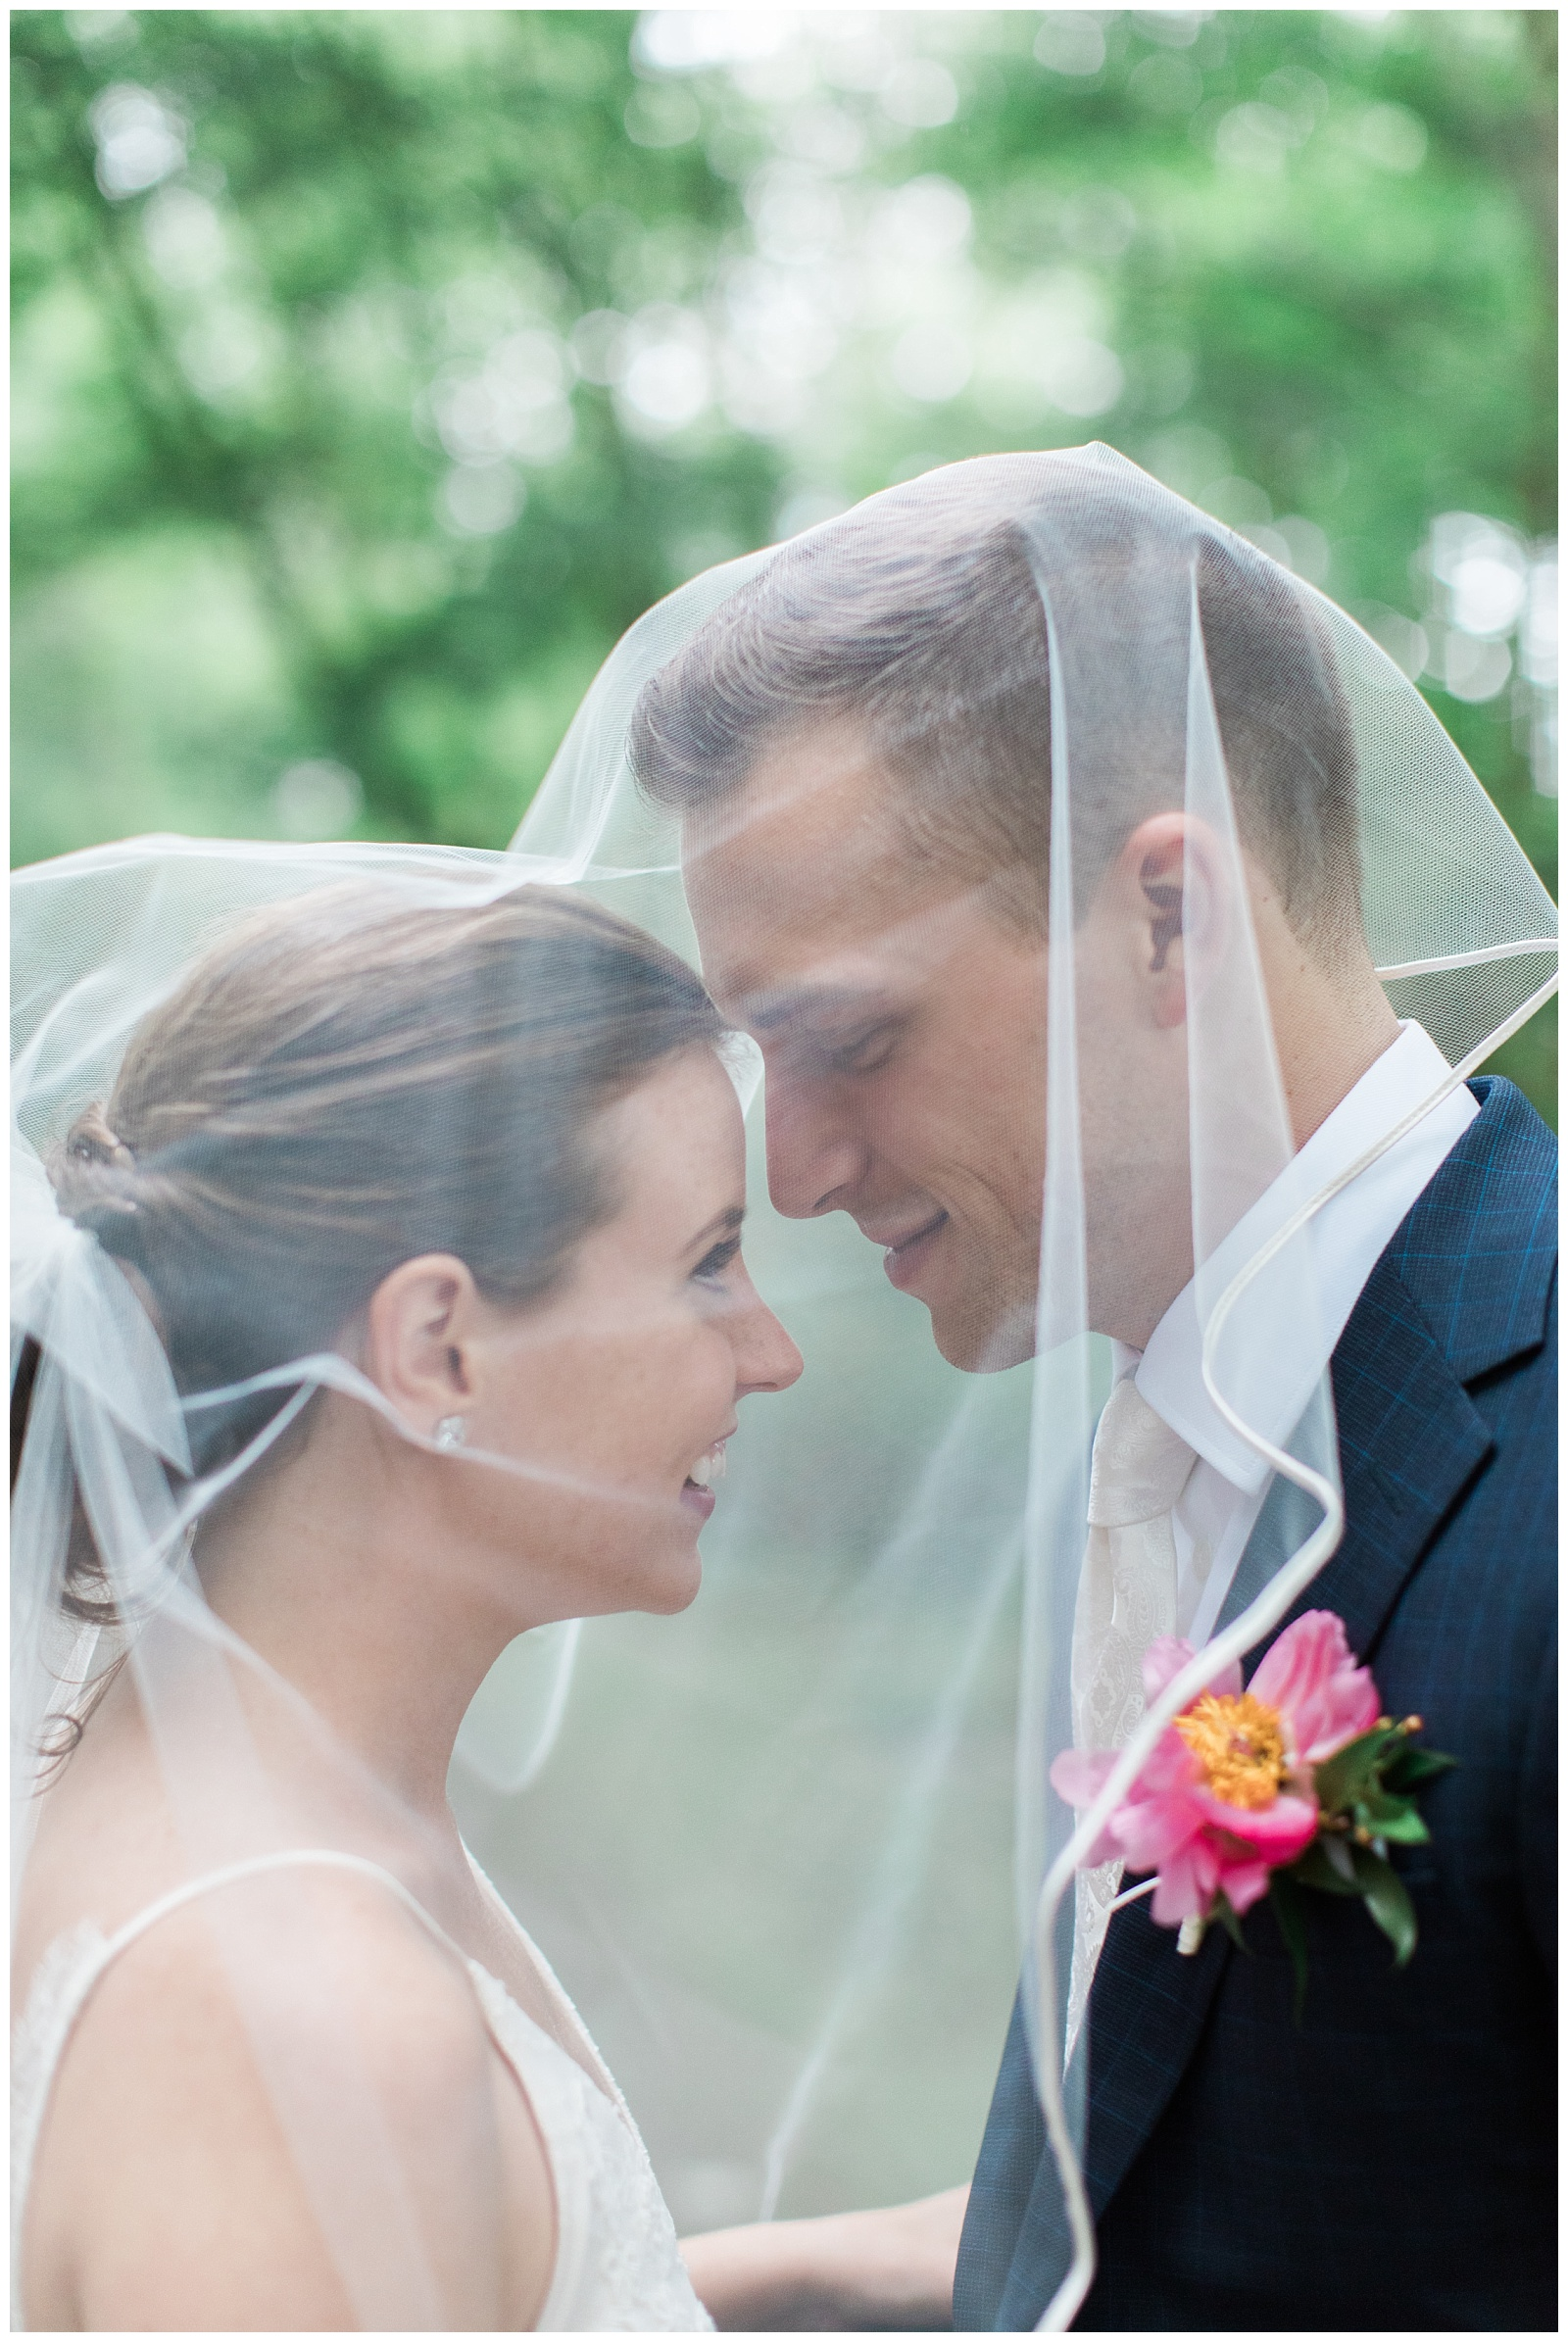 Bride and groom under veil at Guelph Ontario Wedding | Ontario Wedding Photographer | Toronto Wedding Photographer | 3photography